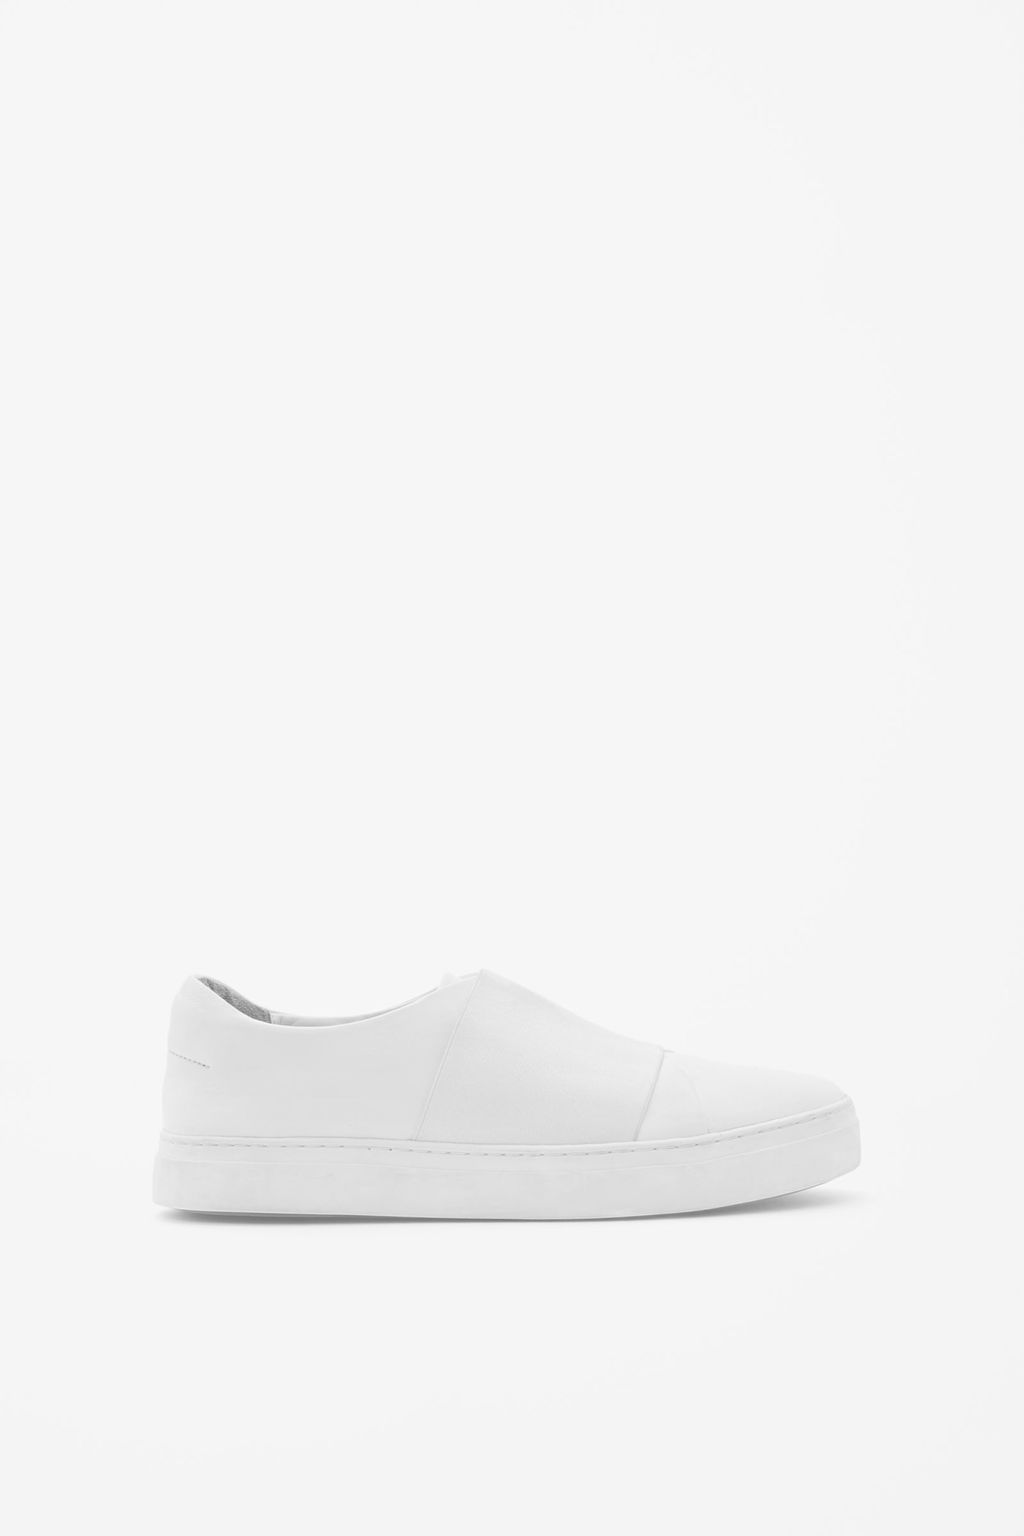 Wrap Over Leather Sneaker - predominant colour: white; occasions: casual, creative work; material: leather; heel height: flat; toe: round toe; style: trainers; finish: plain; pattern: plain; season: s/s 2016